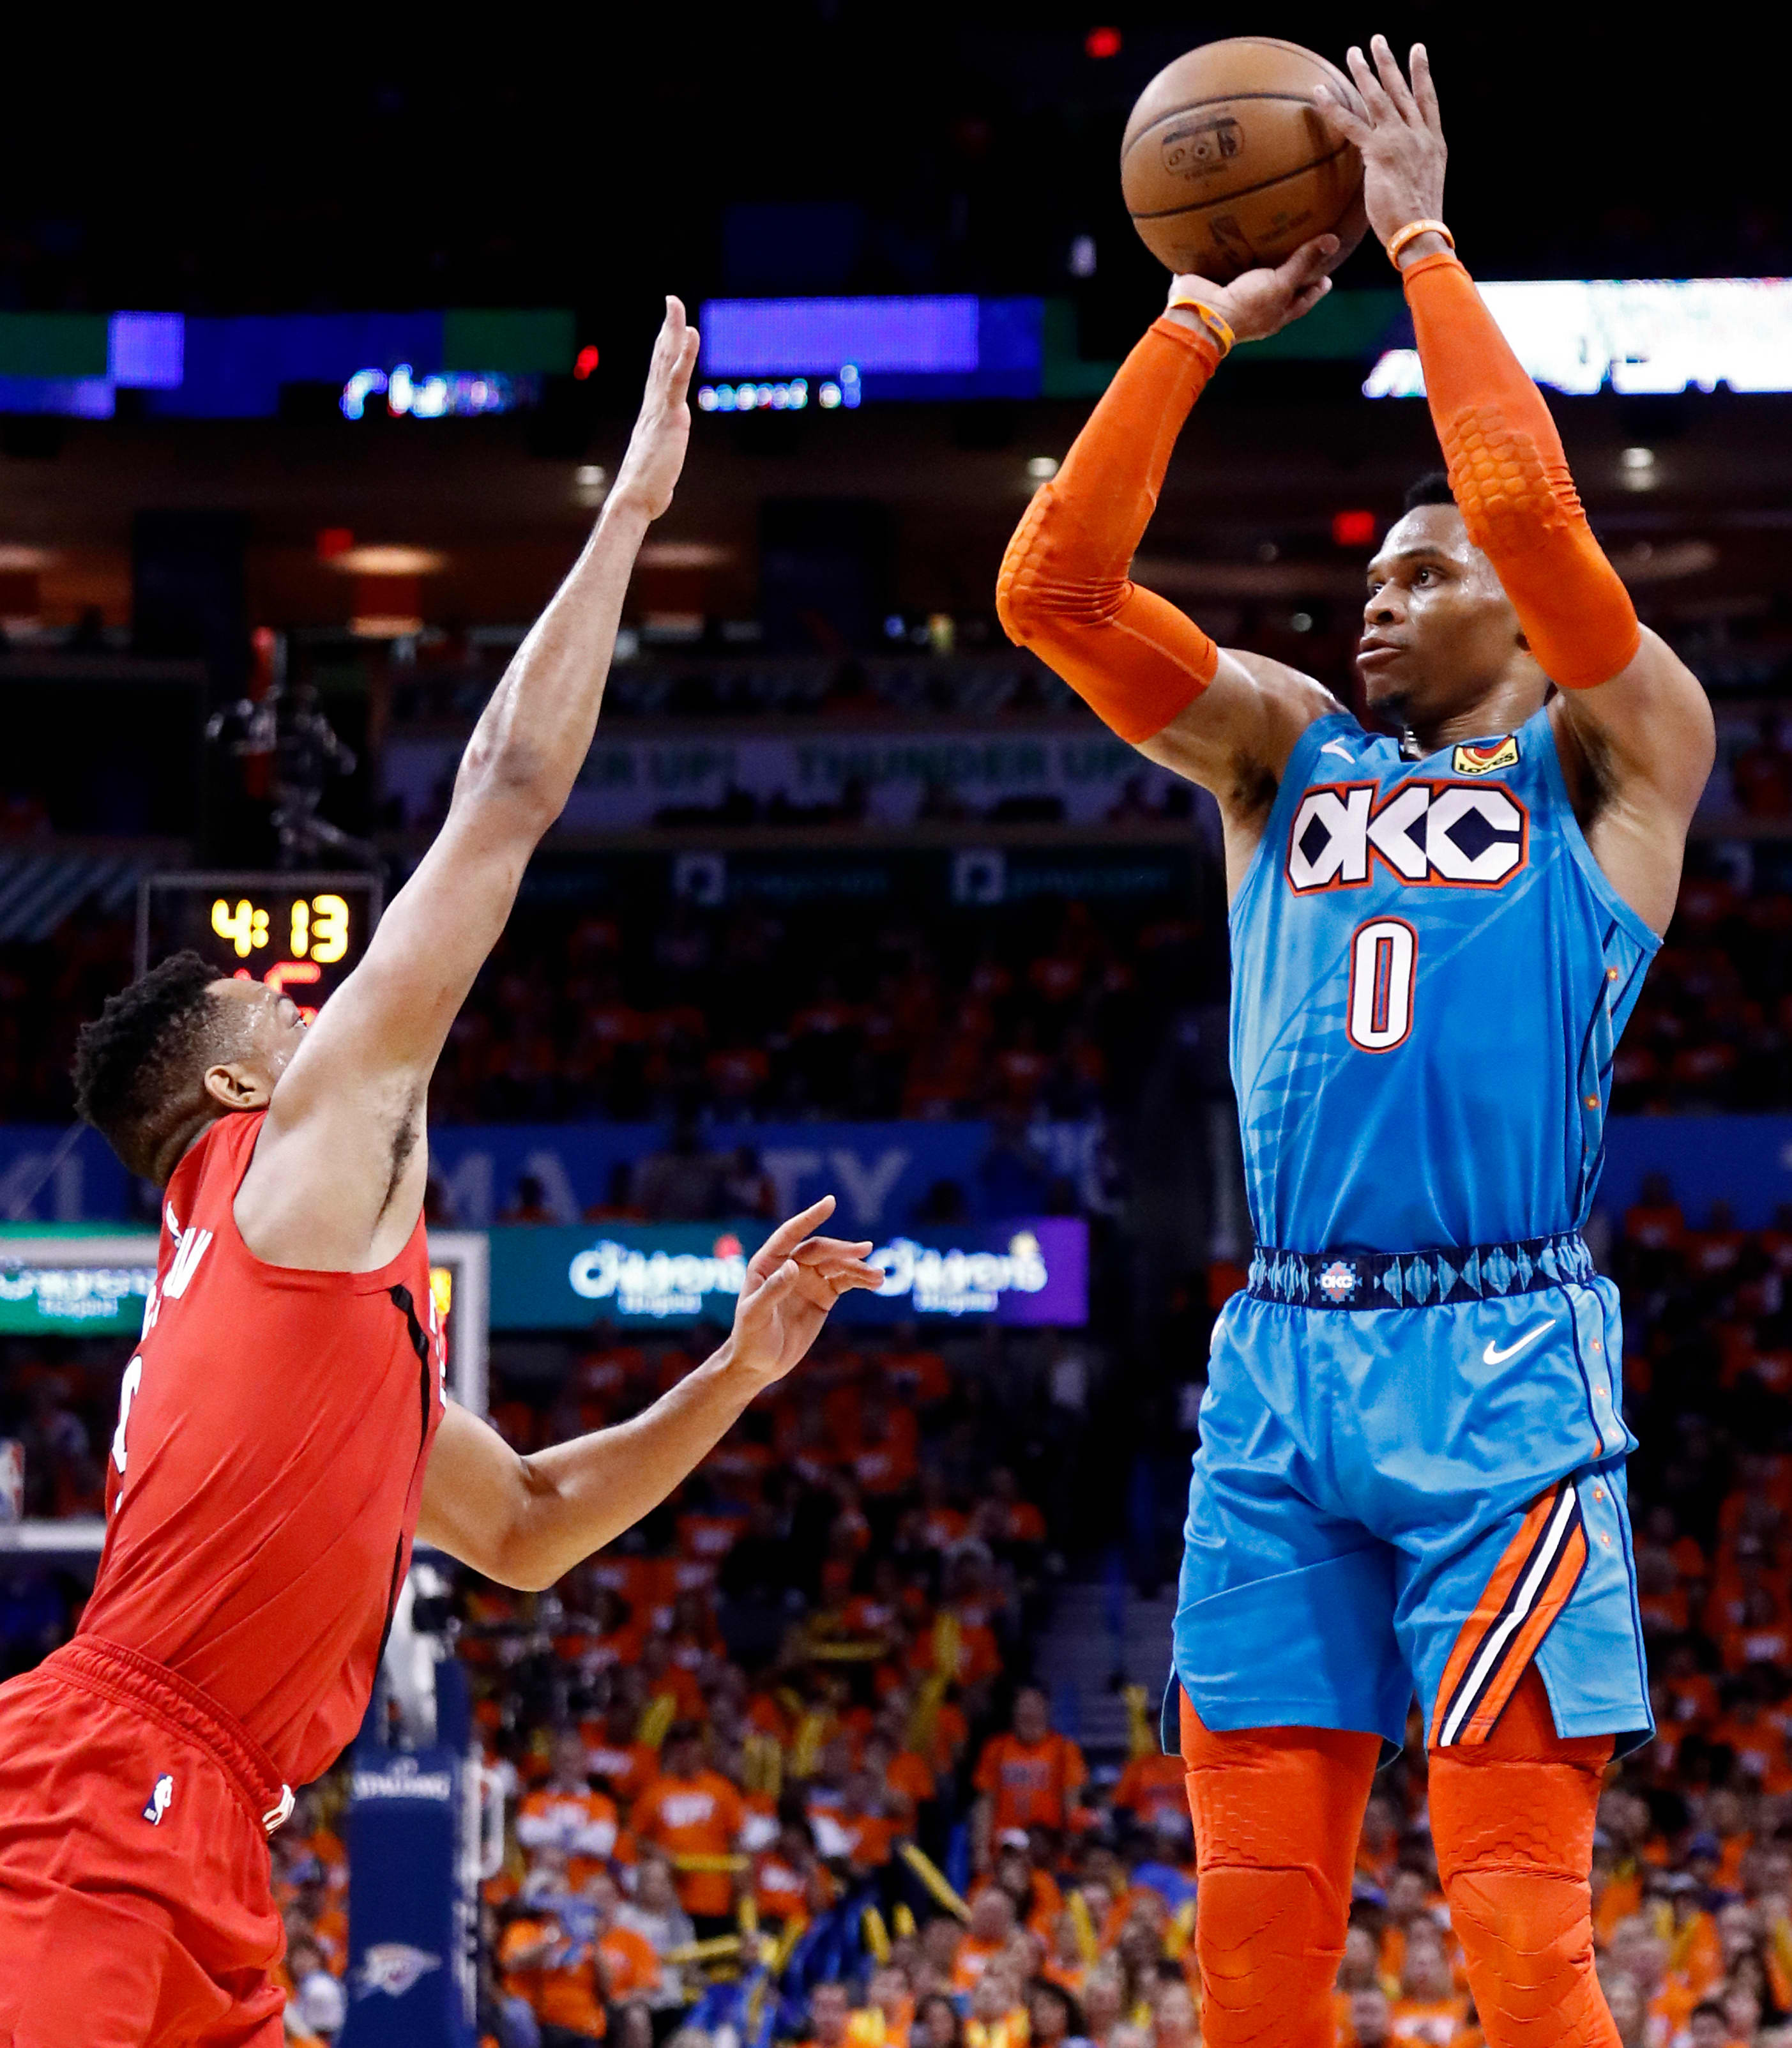 Portland Trail Blazers player CJ McCollum (L) tries to block a shot against Oklahoma City Thunder player Russell Westbrook